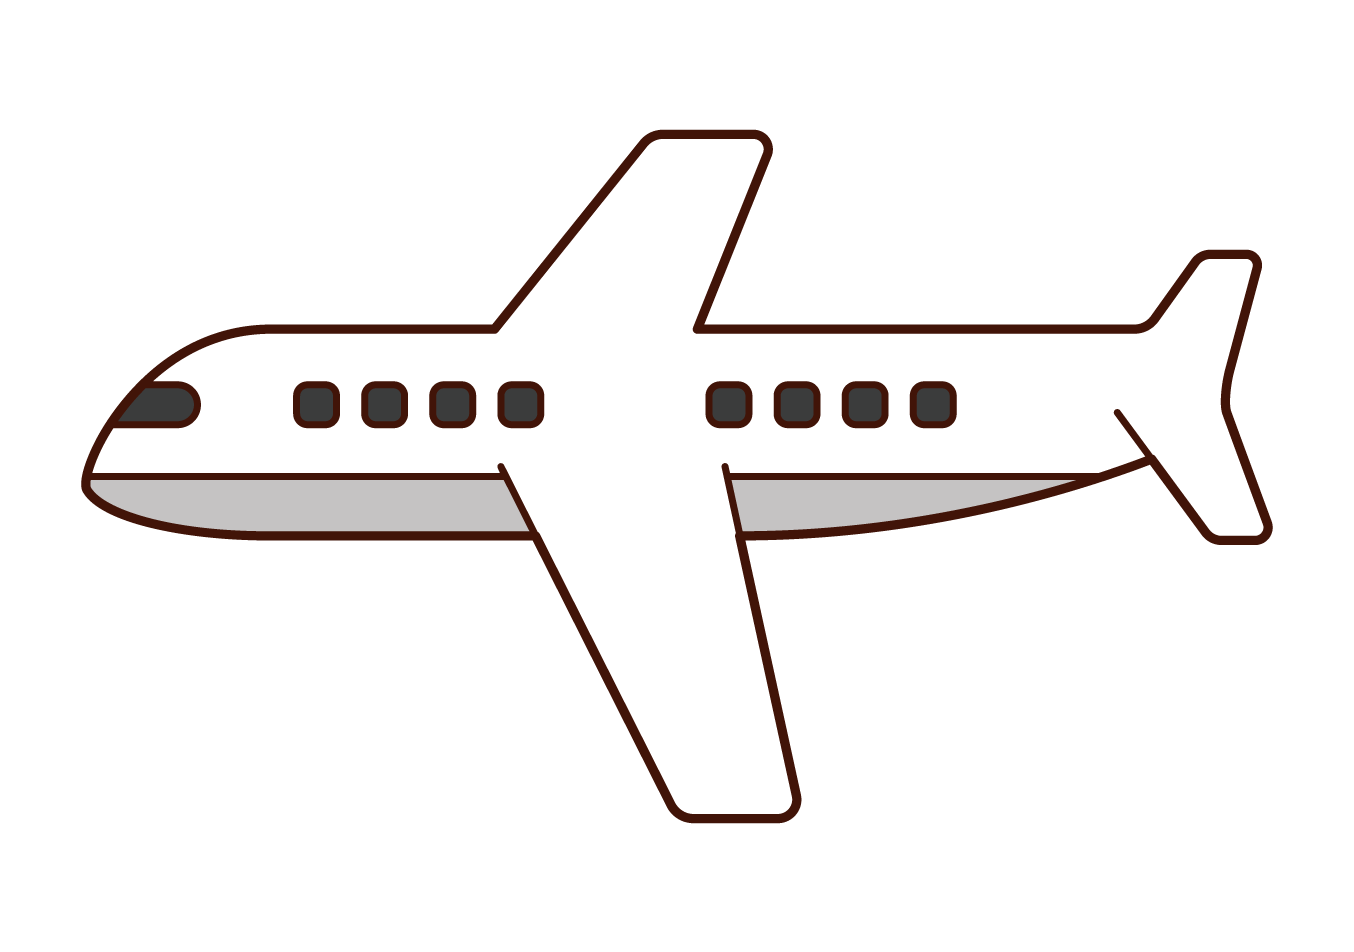 Illustration of an airplane seen from the side